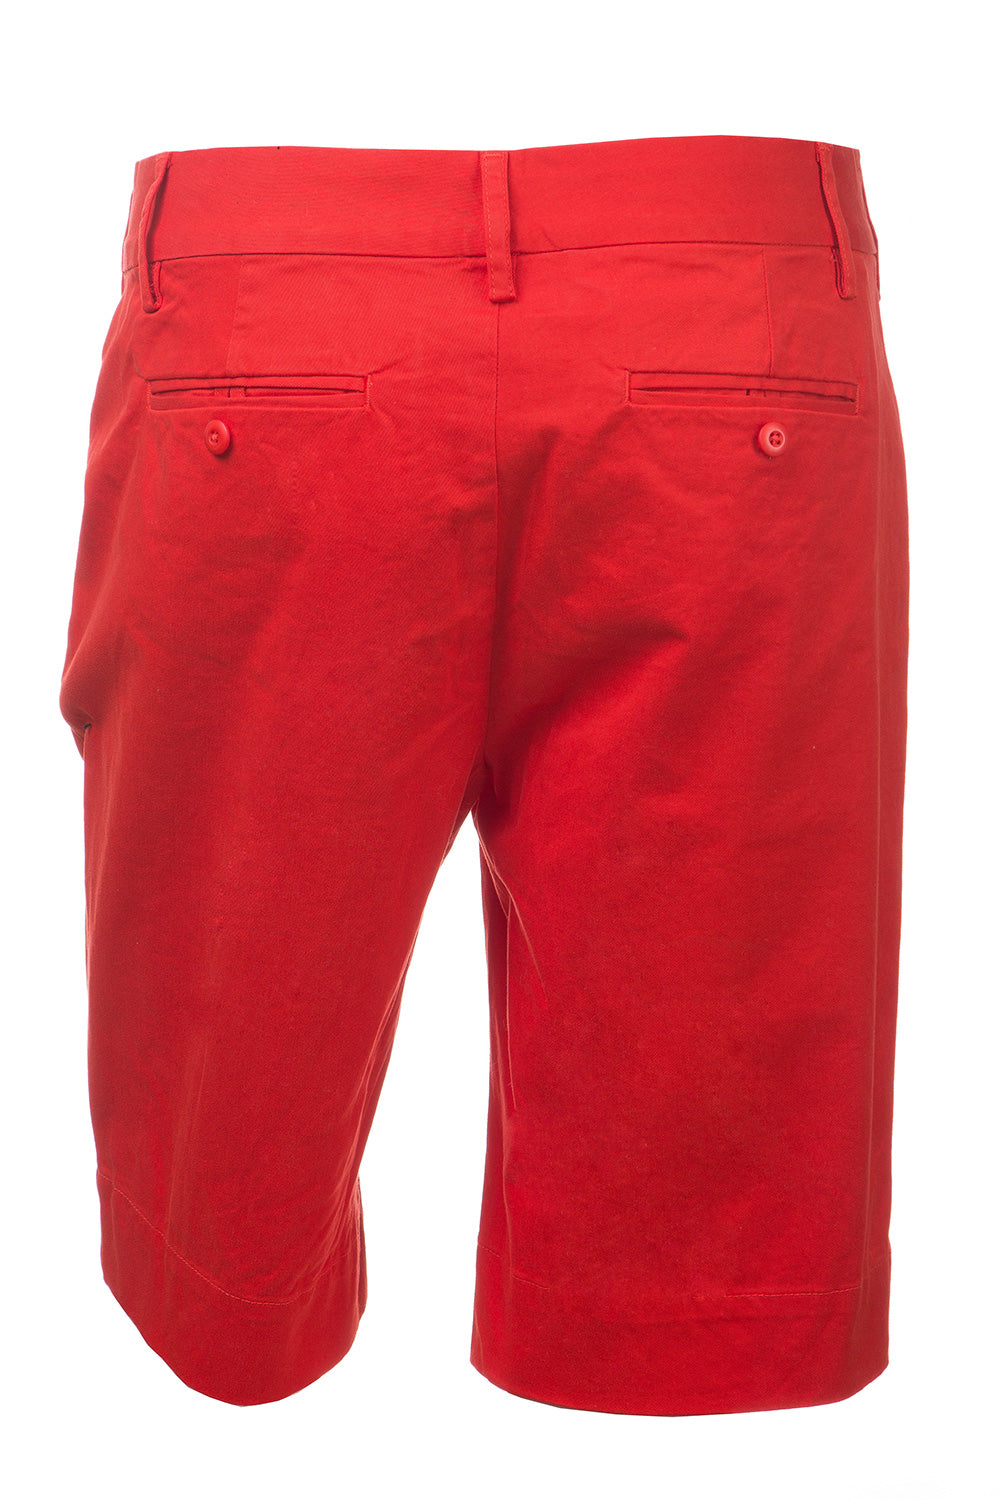 Type 4 Red Hot Shorts